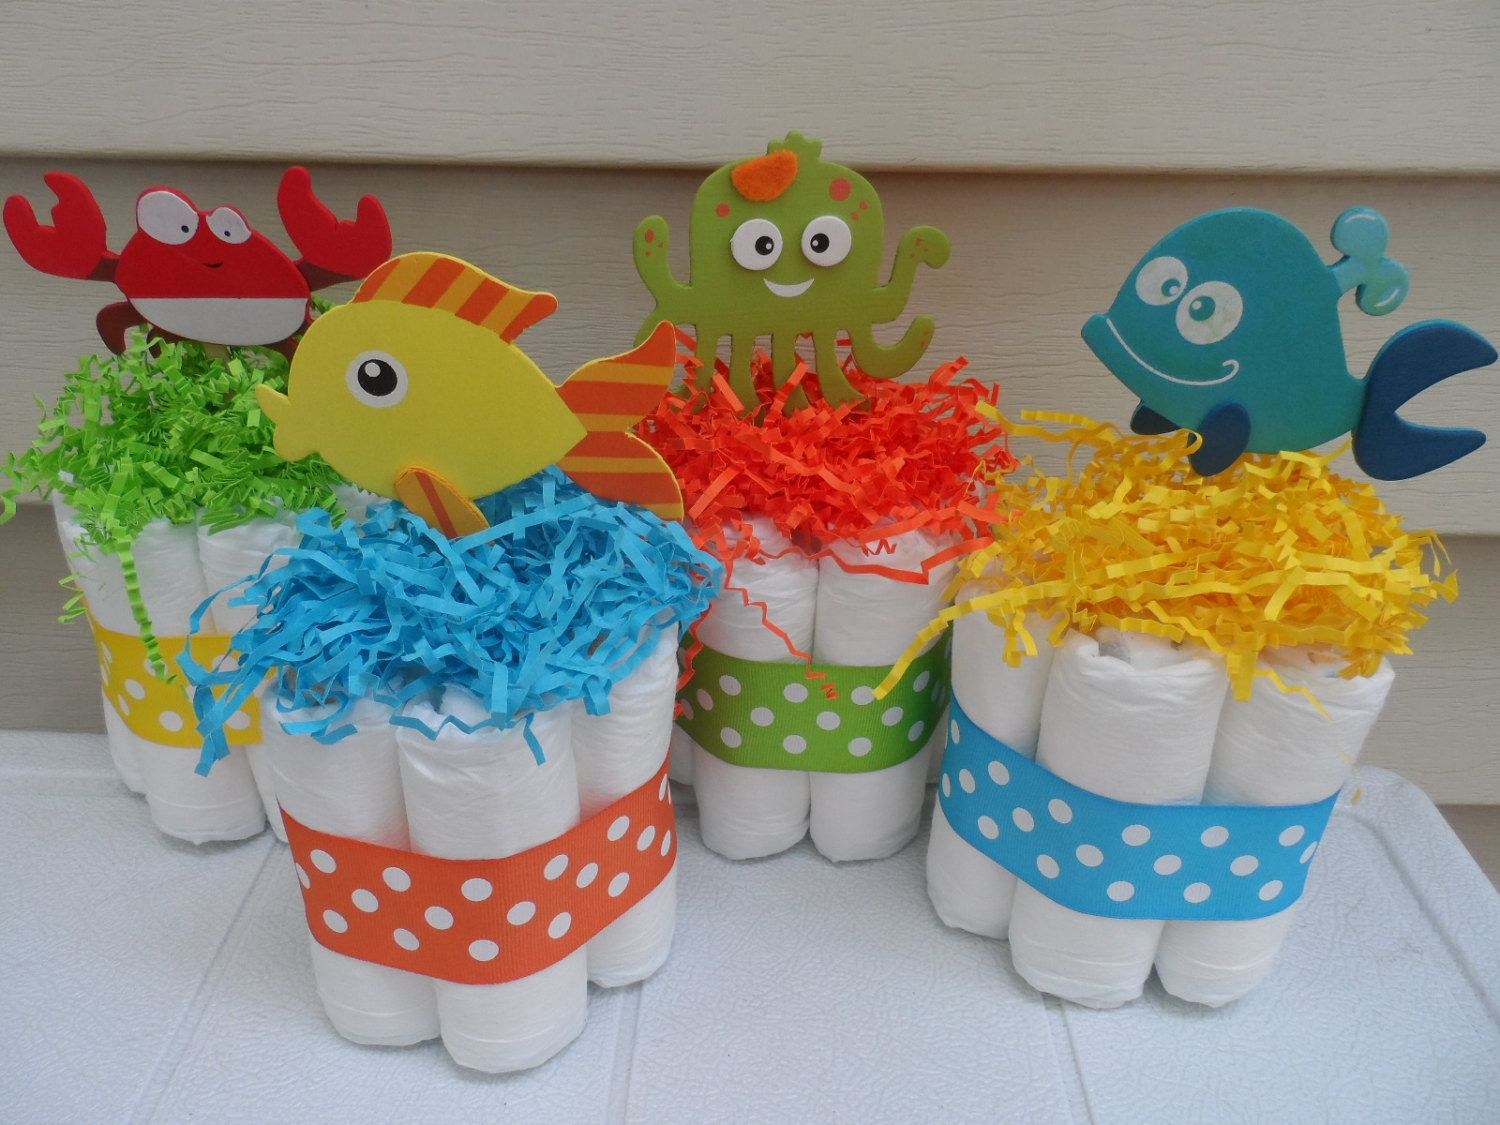 4 Under The Sea Theme Mini Diaper Cakes, Baby Shower Centerpiece